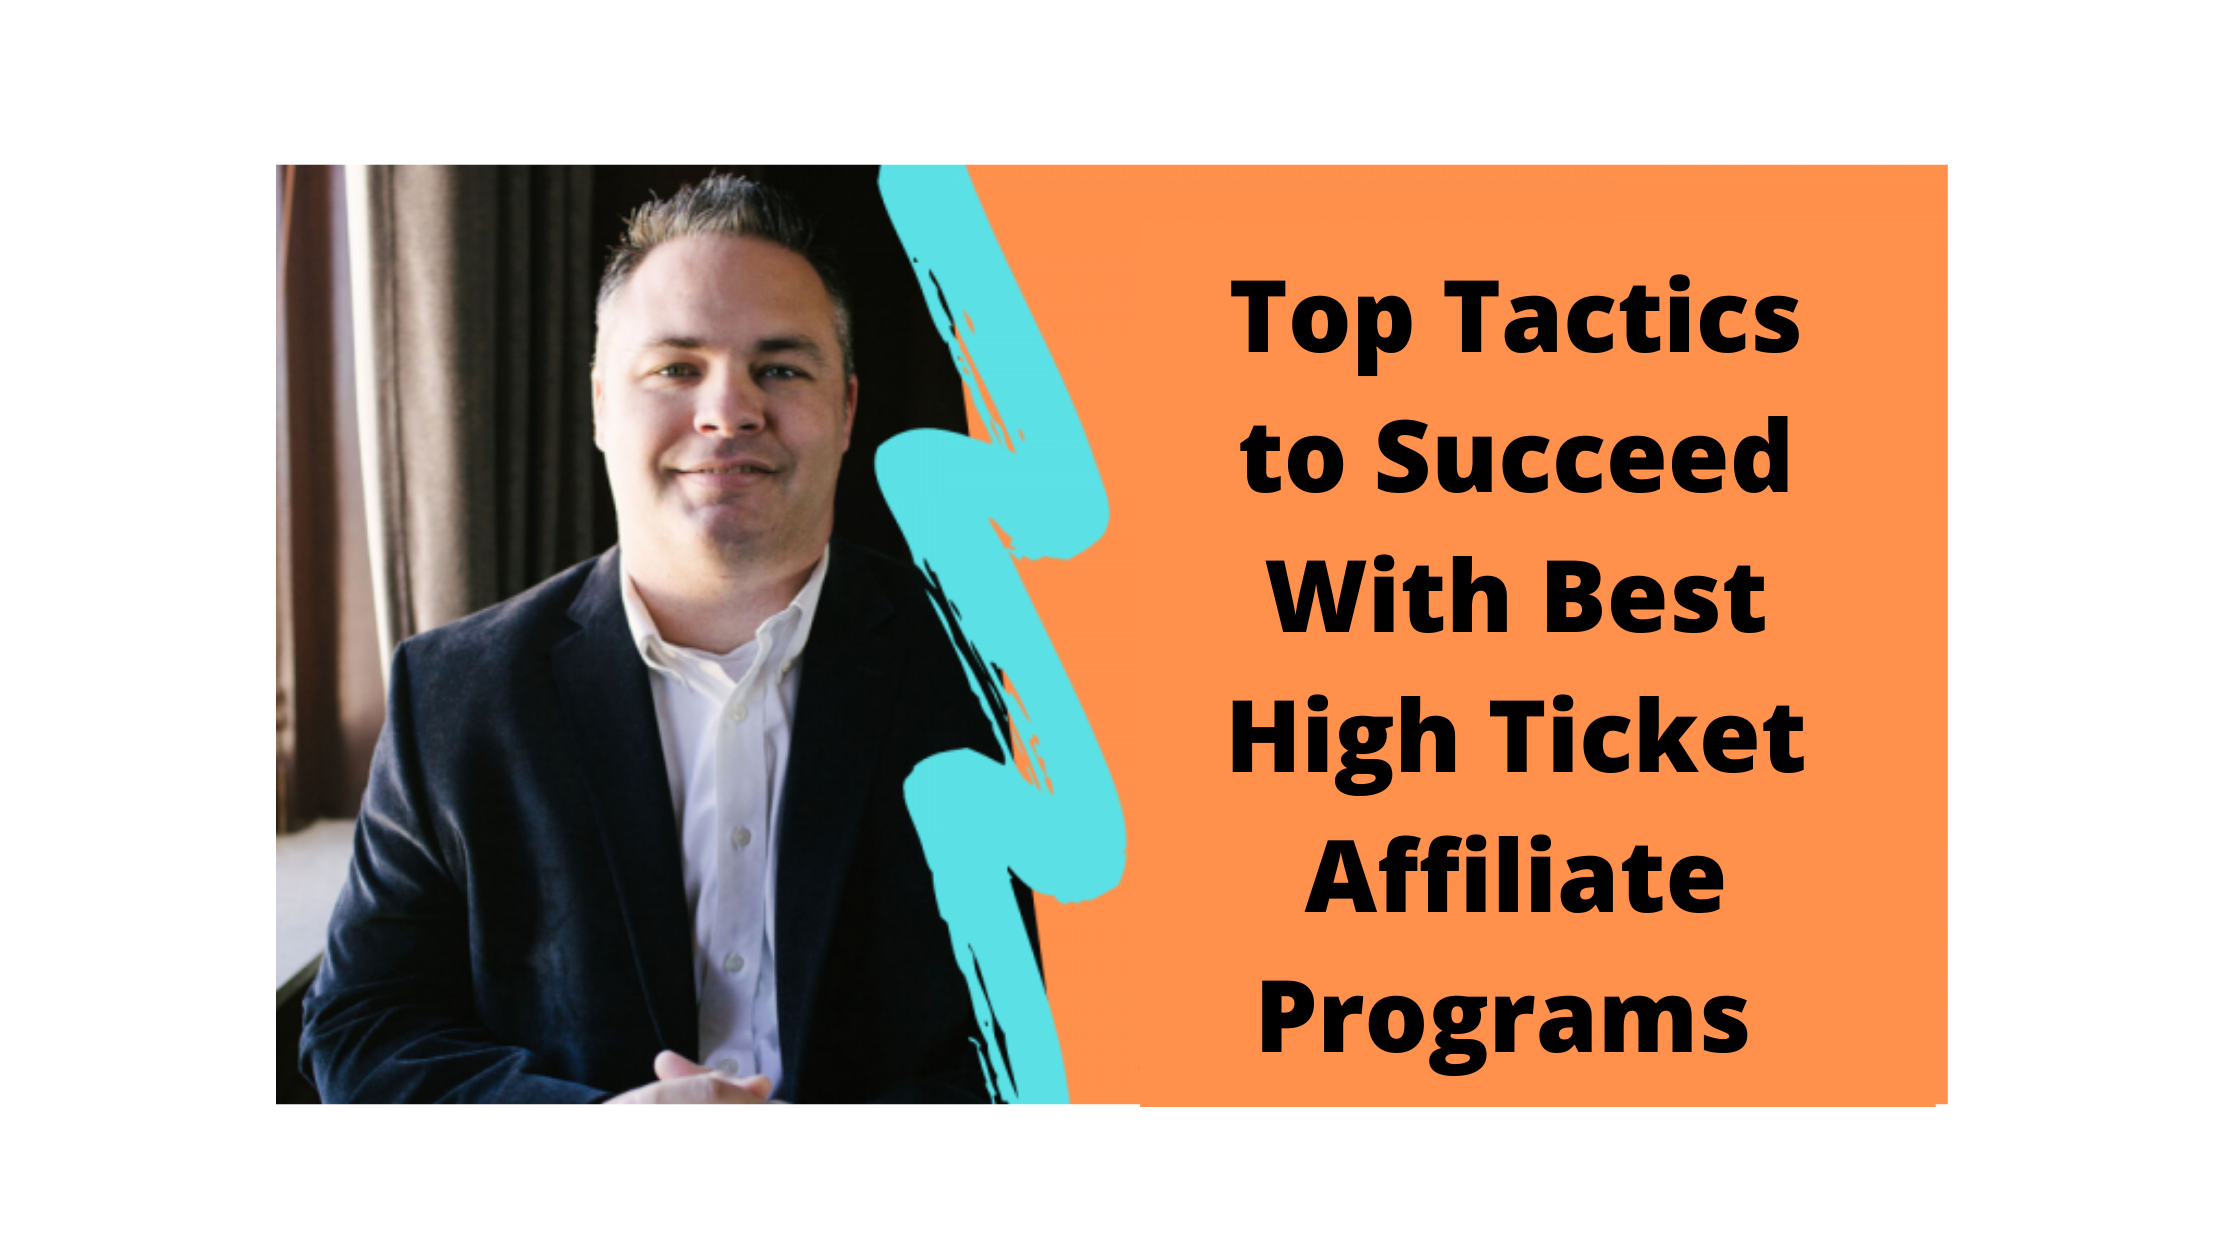 high-ticket-affiliate-programs-top